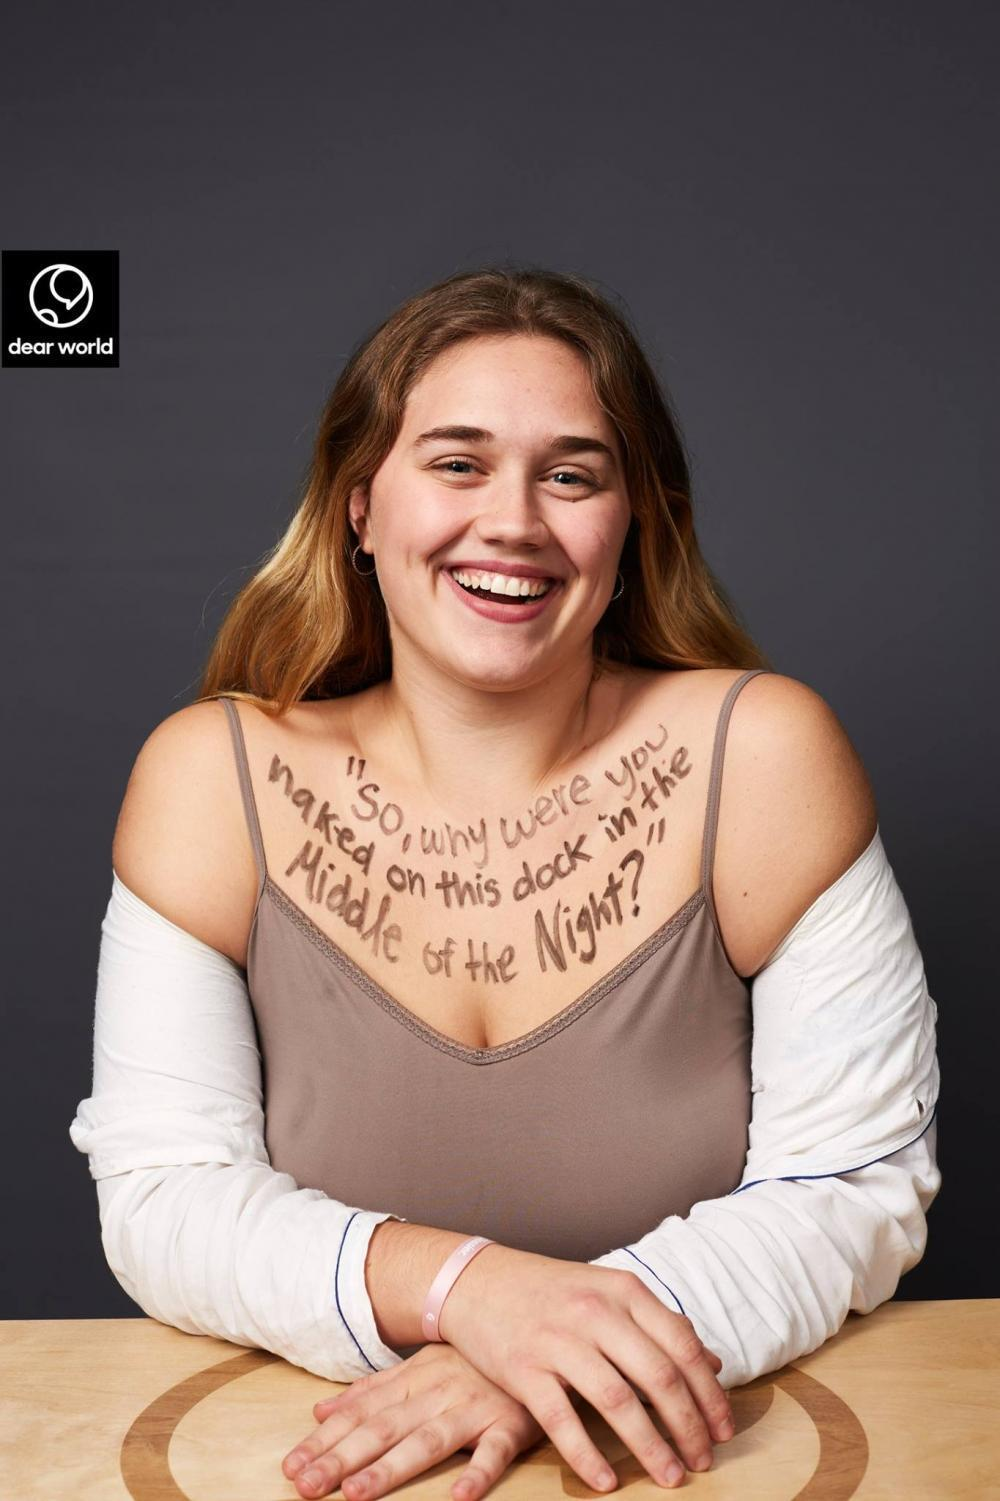 "Chloe Citron took part in the ""Dear World"" art project and shares her story through the letters written on her chest."